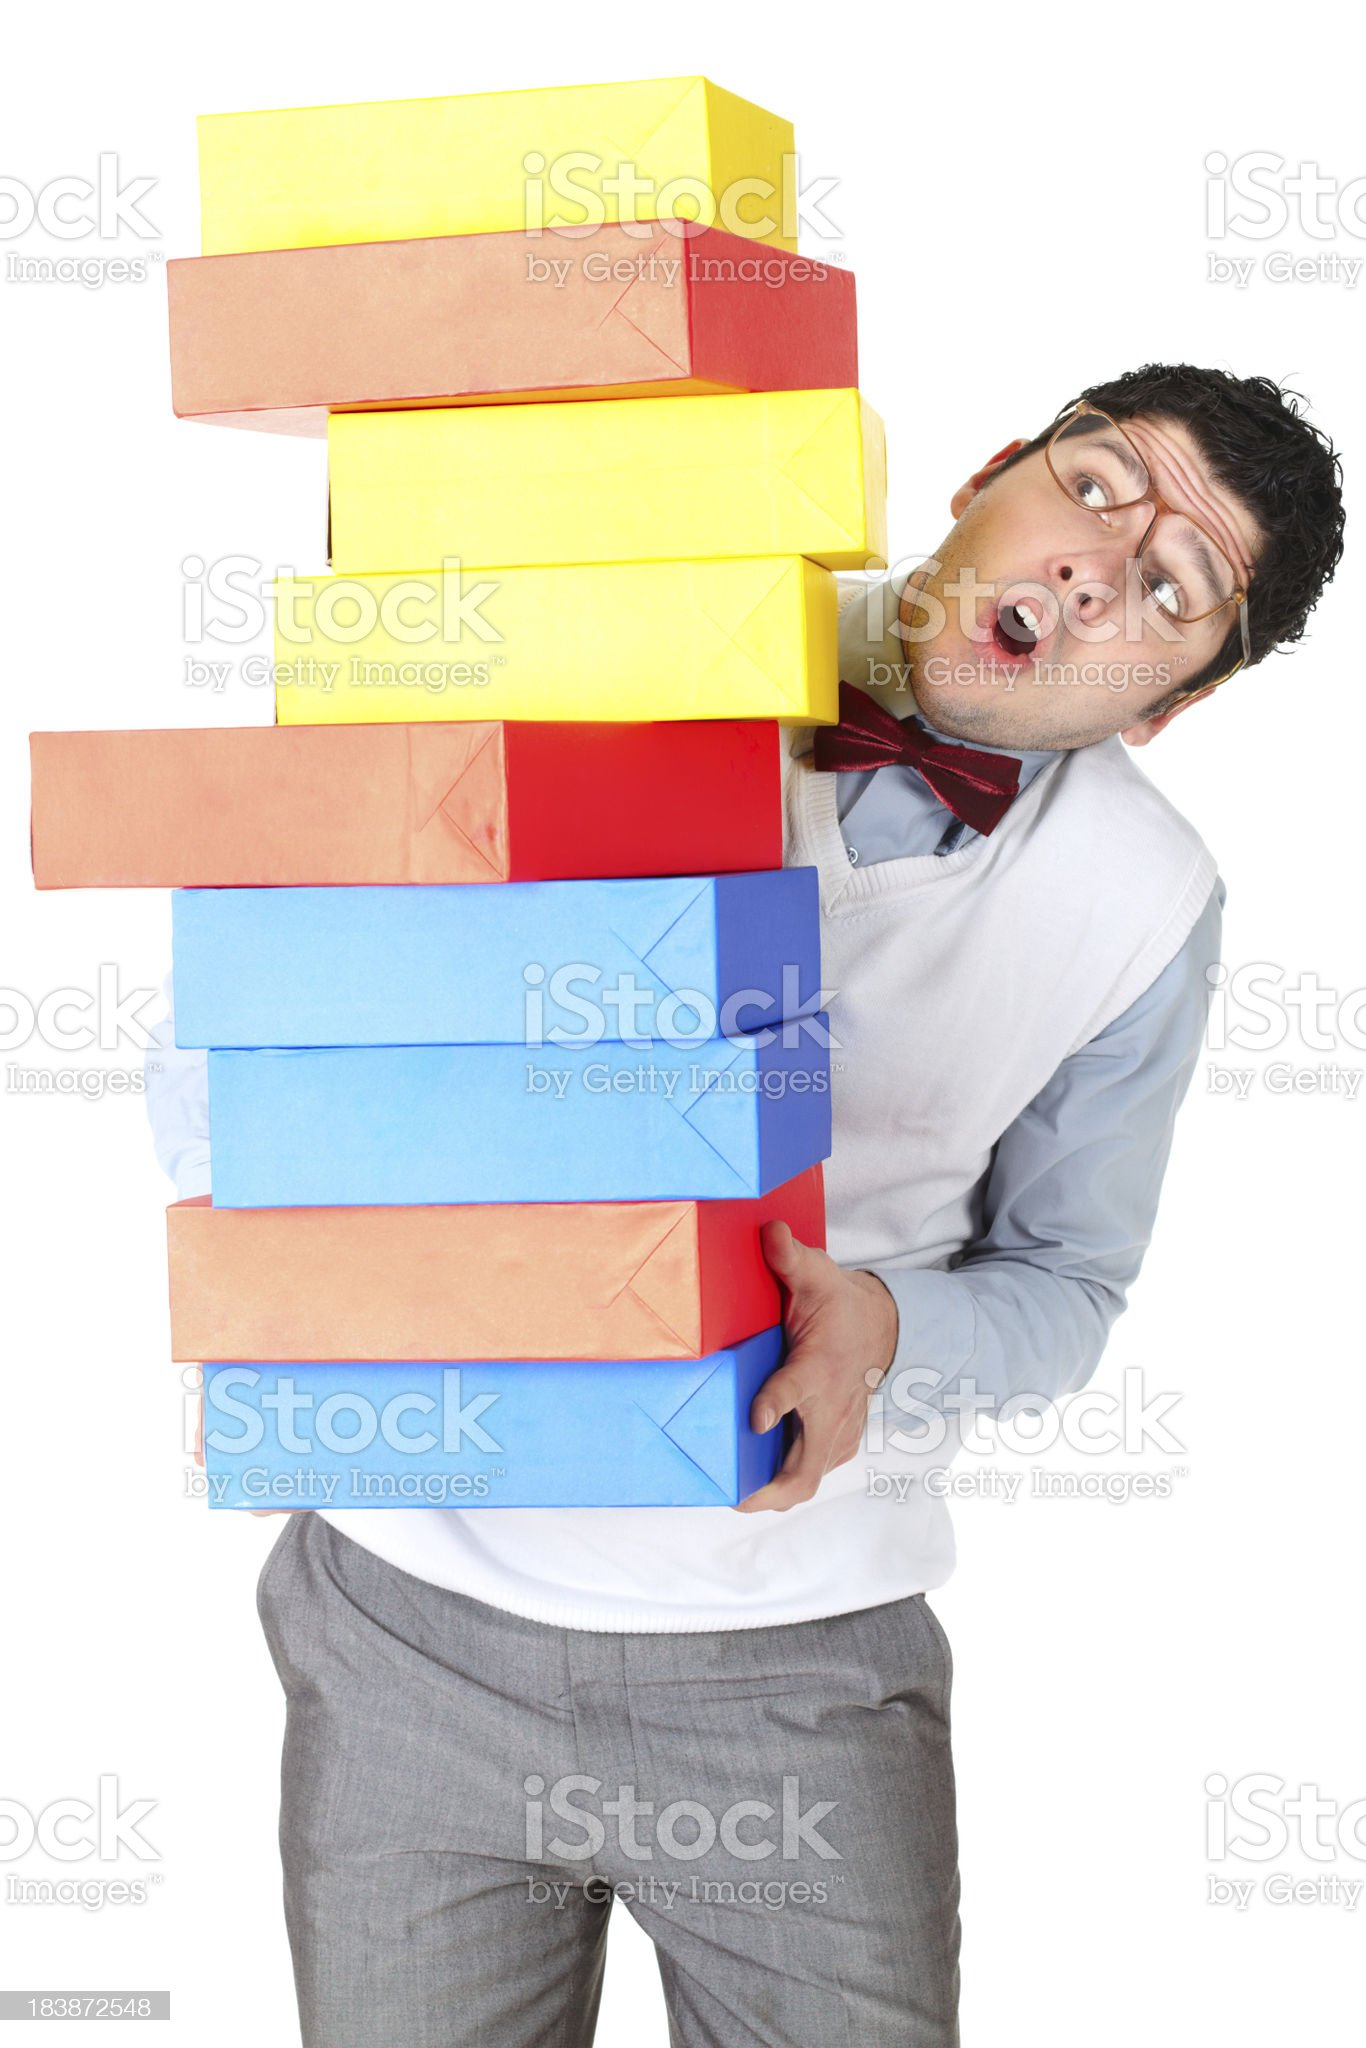 Busy nerdy office worker royalty-free stock photo